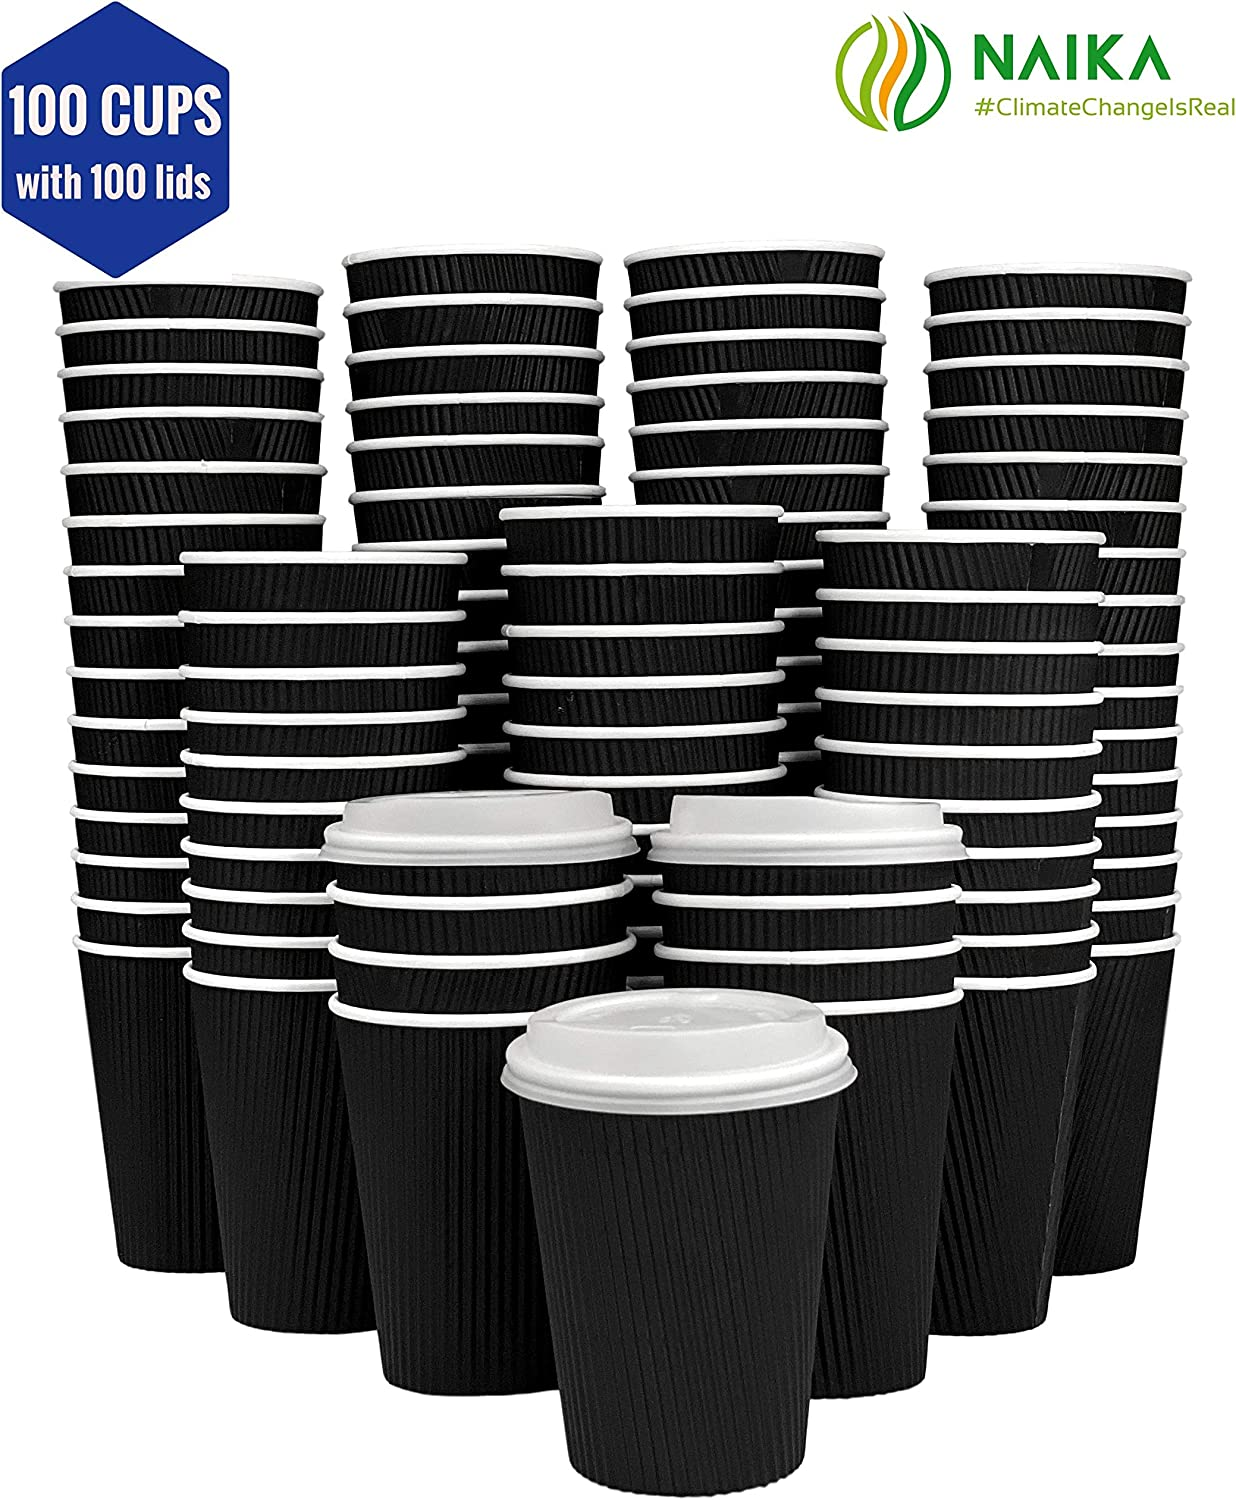 Eco-Friendly |16 Oz Black Ripple PLA Coffee Cups| Disposable Insulated To Go Paper Cups for Hot Beverages perfect for bulk, offices, parties, cafes| 100 PLA Cups